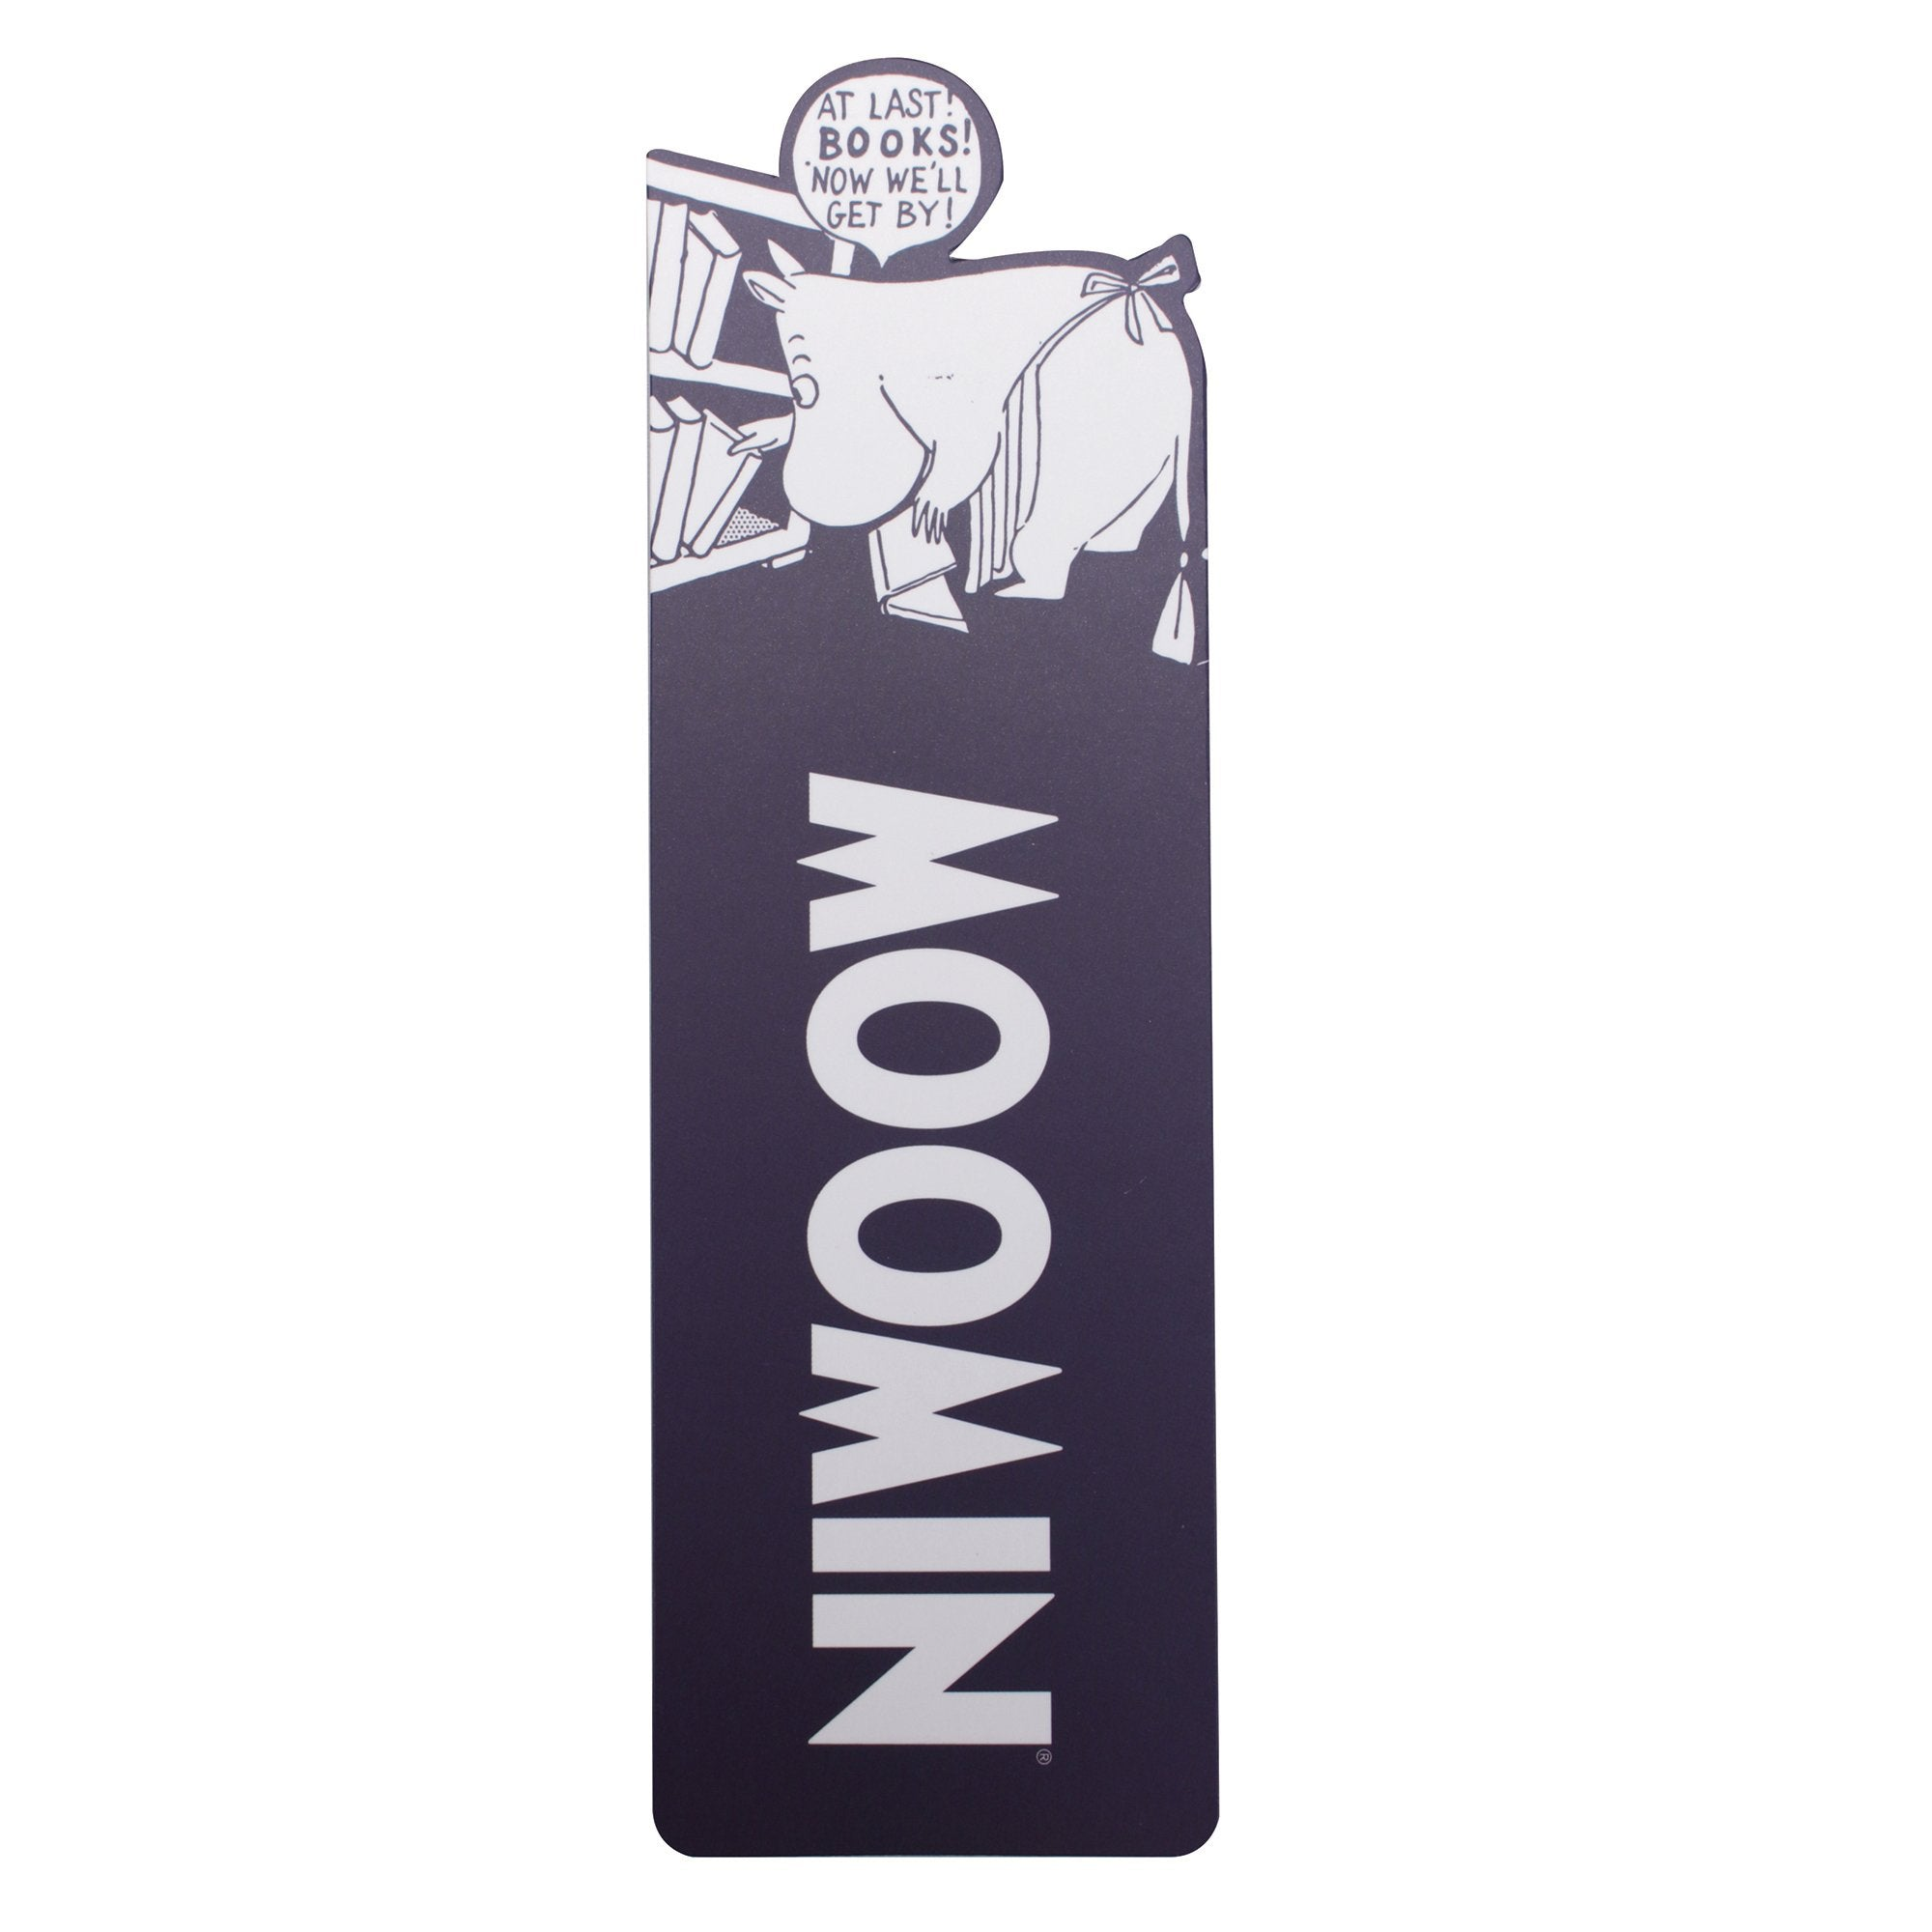 Moomin Bookmark - At Last! Books! - Half Moon Bay US